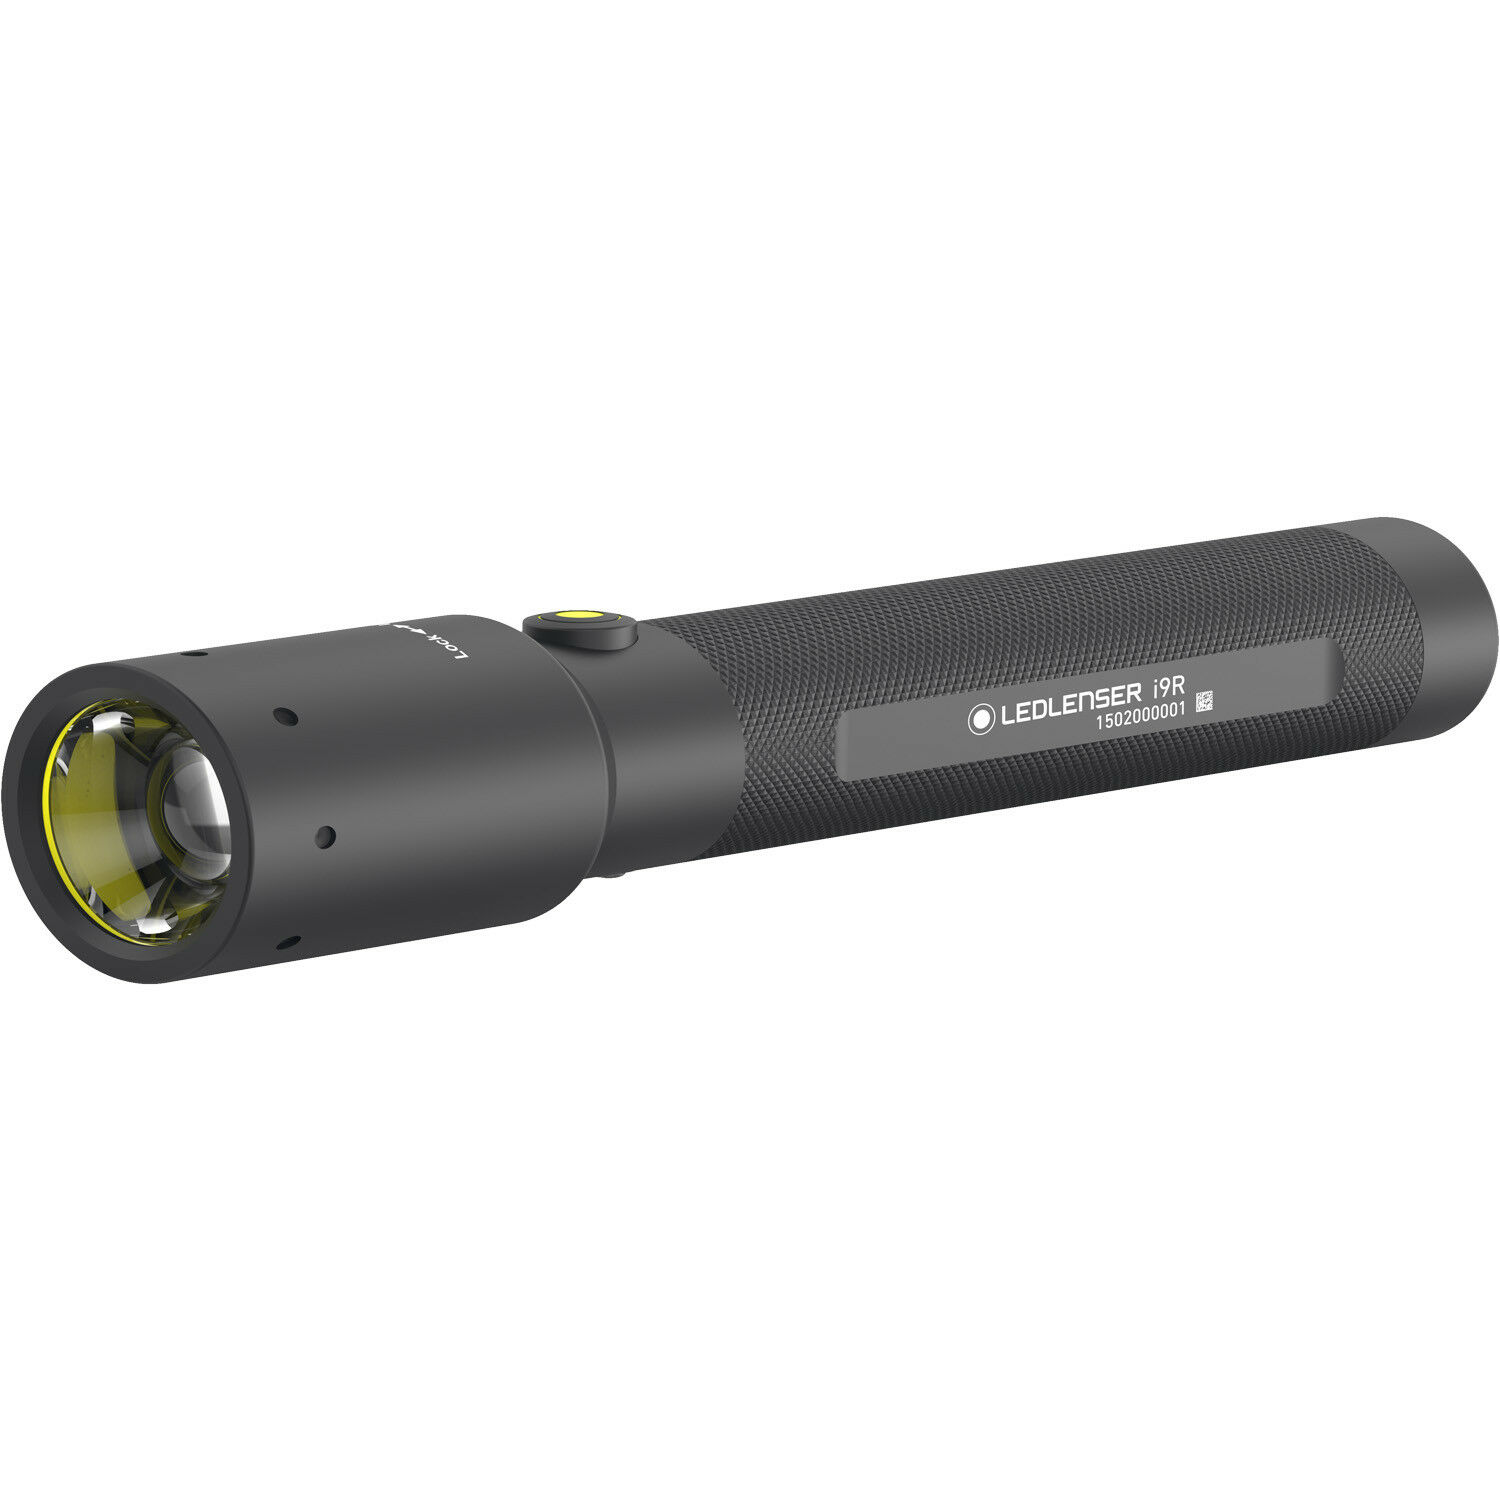 LED Lenser  i9R Rechargeable Flashlight Torch 400 Lumens  factory direct and quick delivery